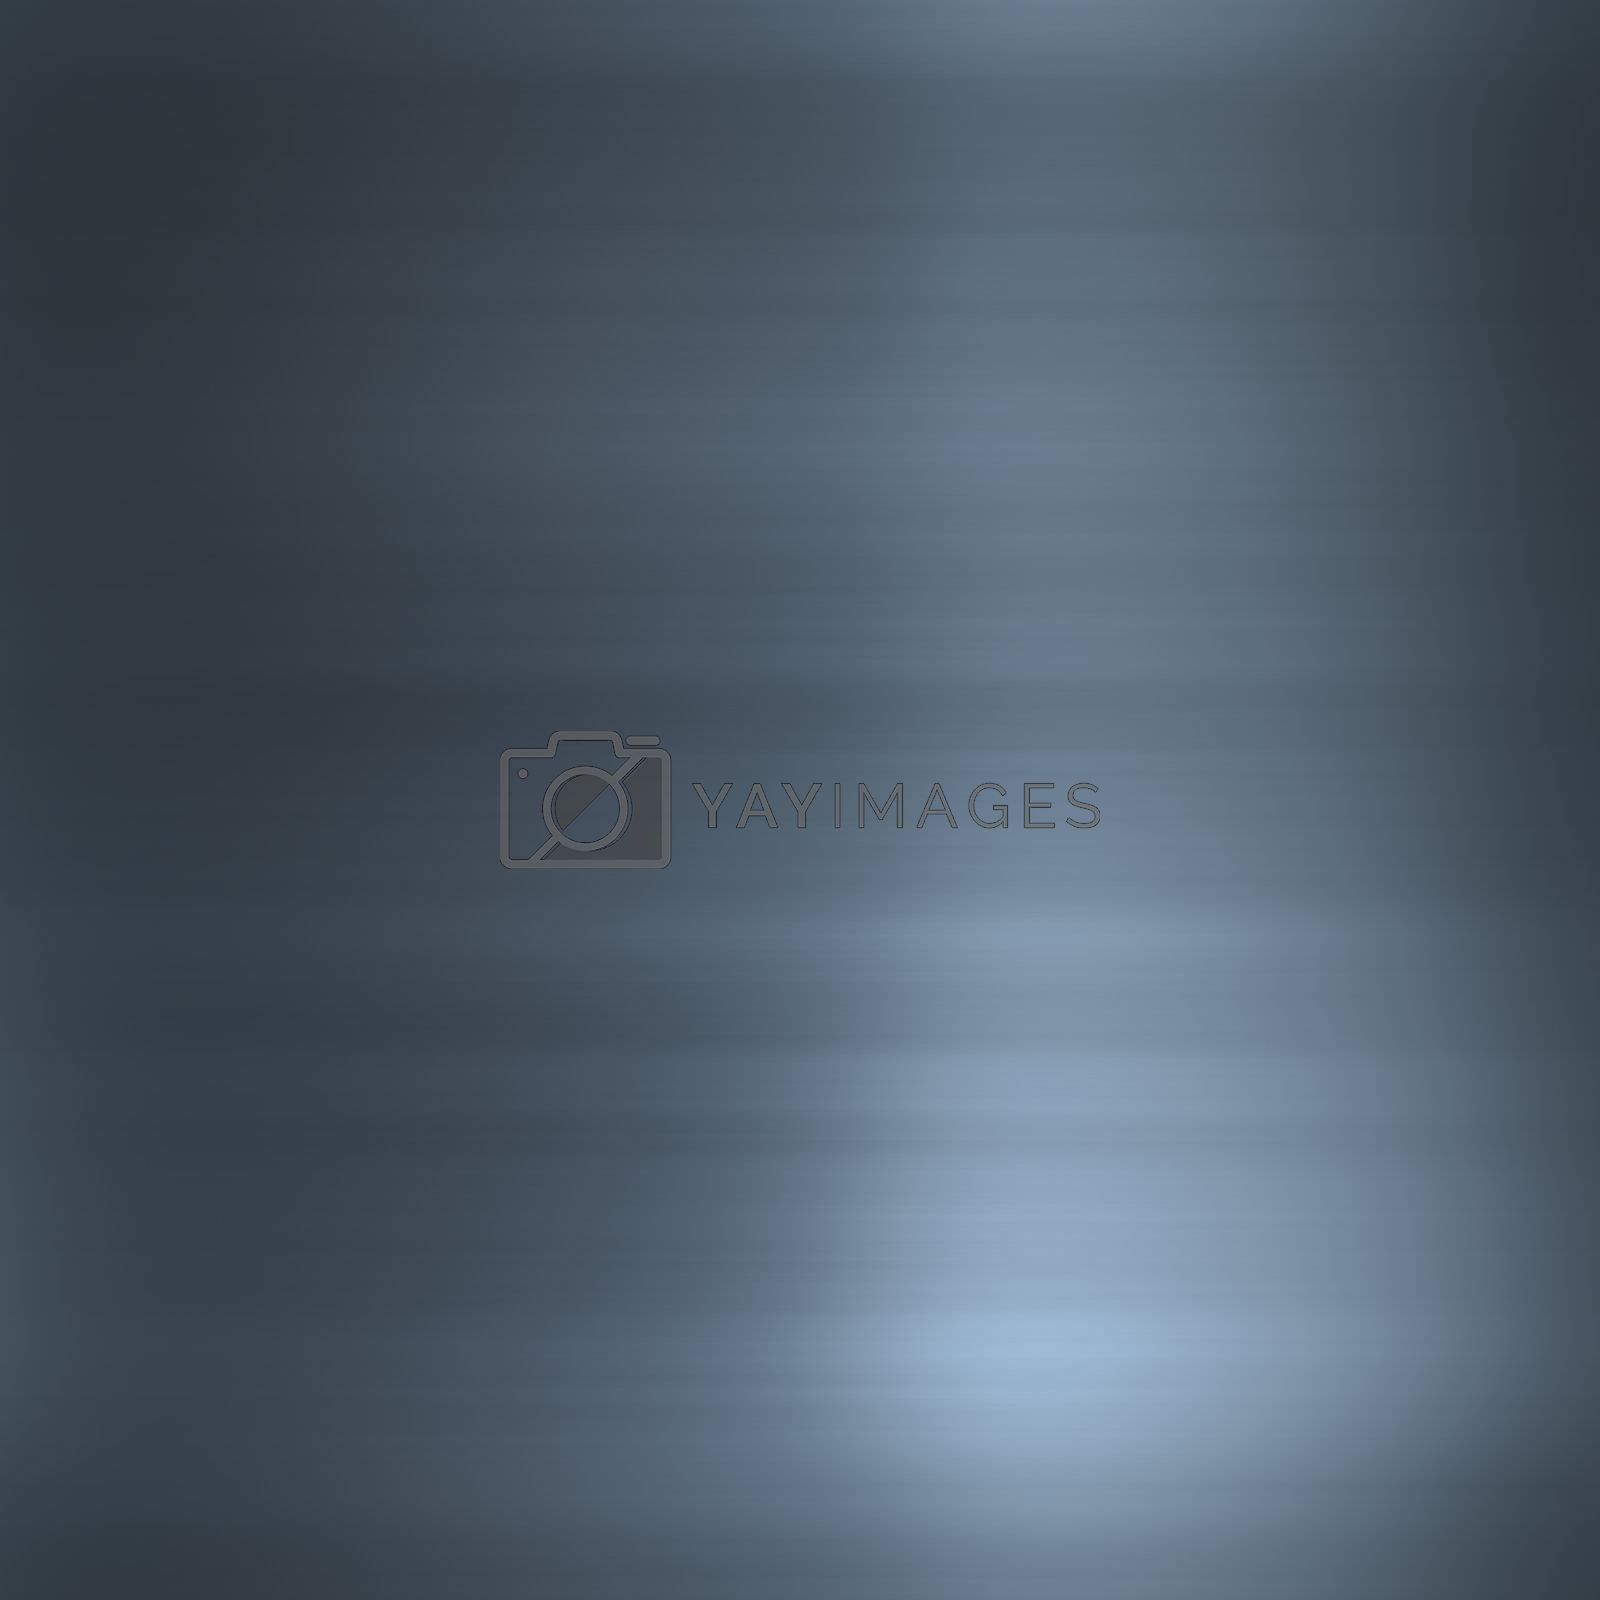 Brushed smooth glossy metal surface texture background illustration